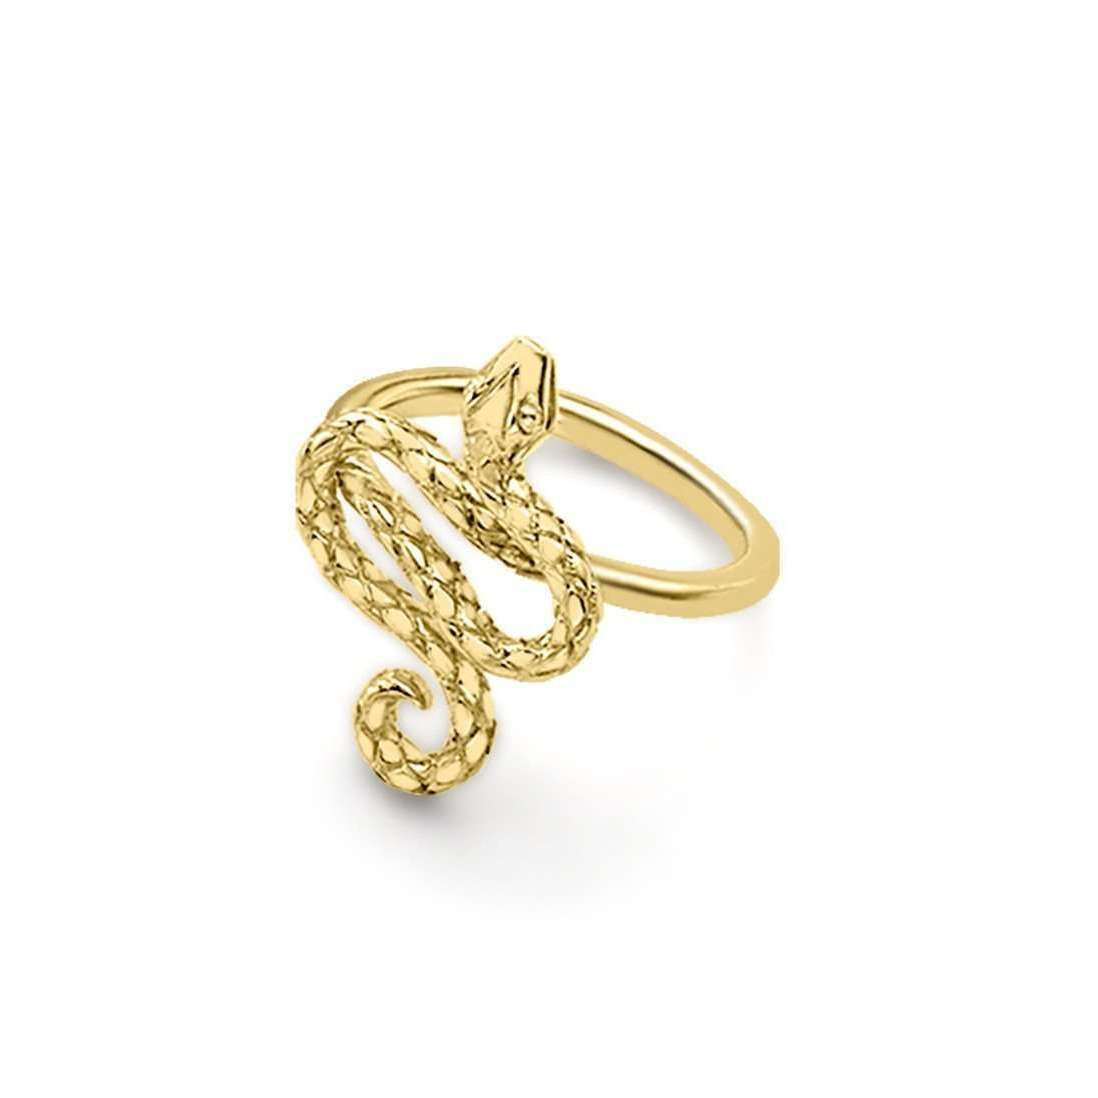 London Road Jewellery Kew Serpent Yellow Gold Ring - UK L - US 5 1/2 - EU 51 3/4 VtRITj